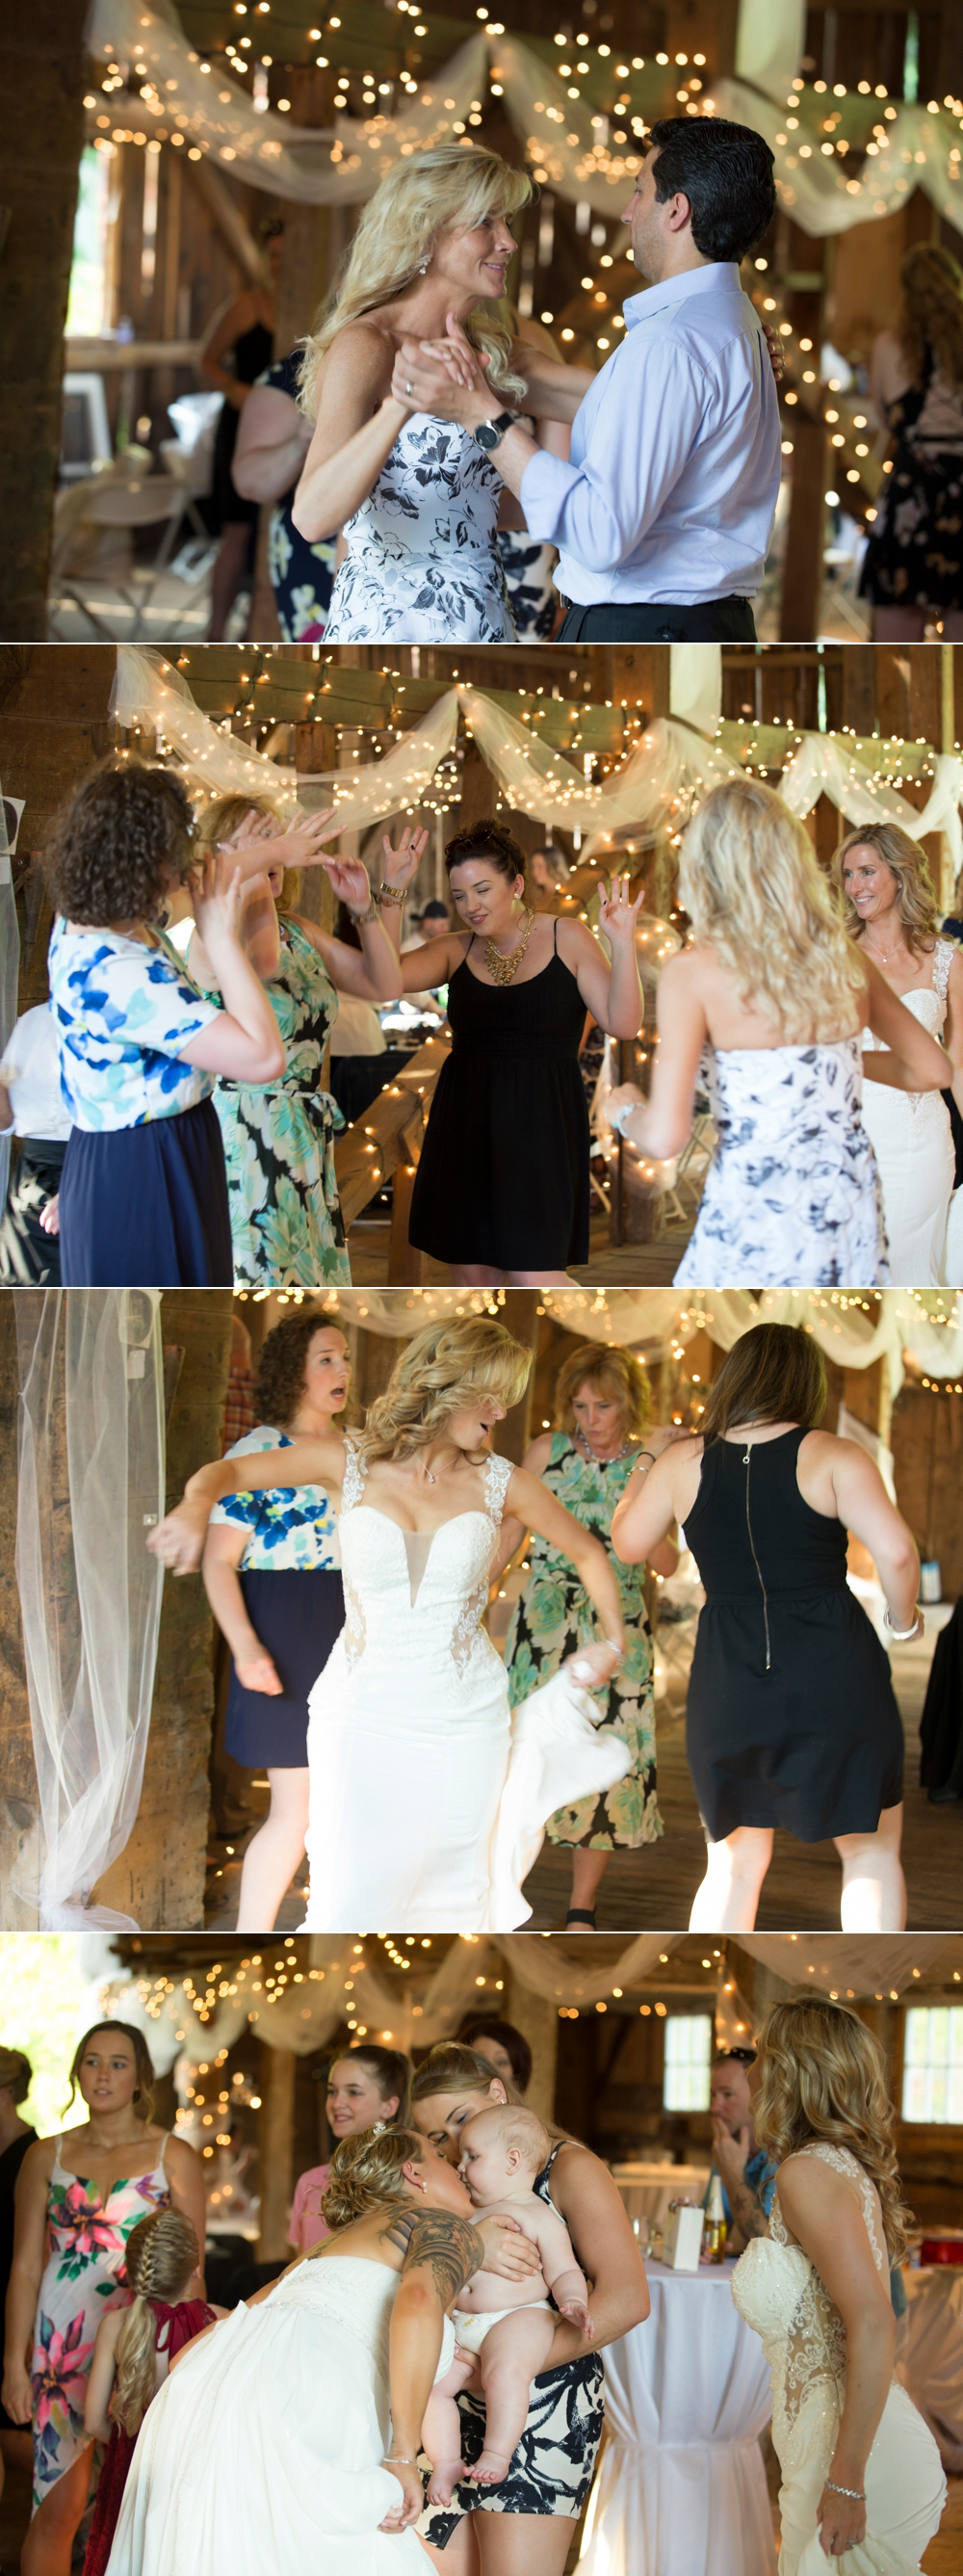 FairbanksFarm_Wedding_Jill&Lori_0029.jpg